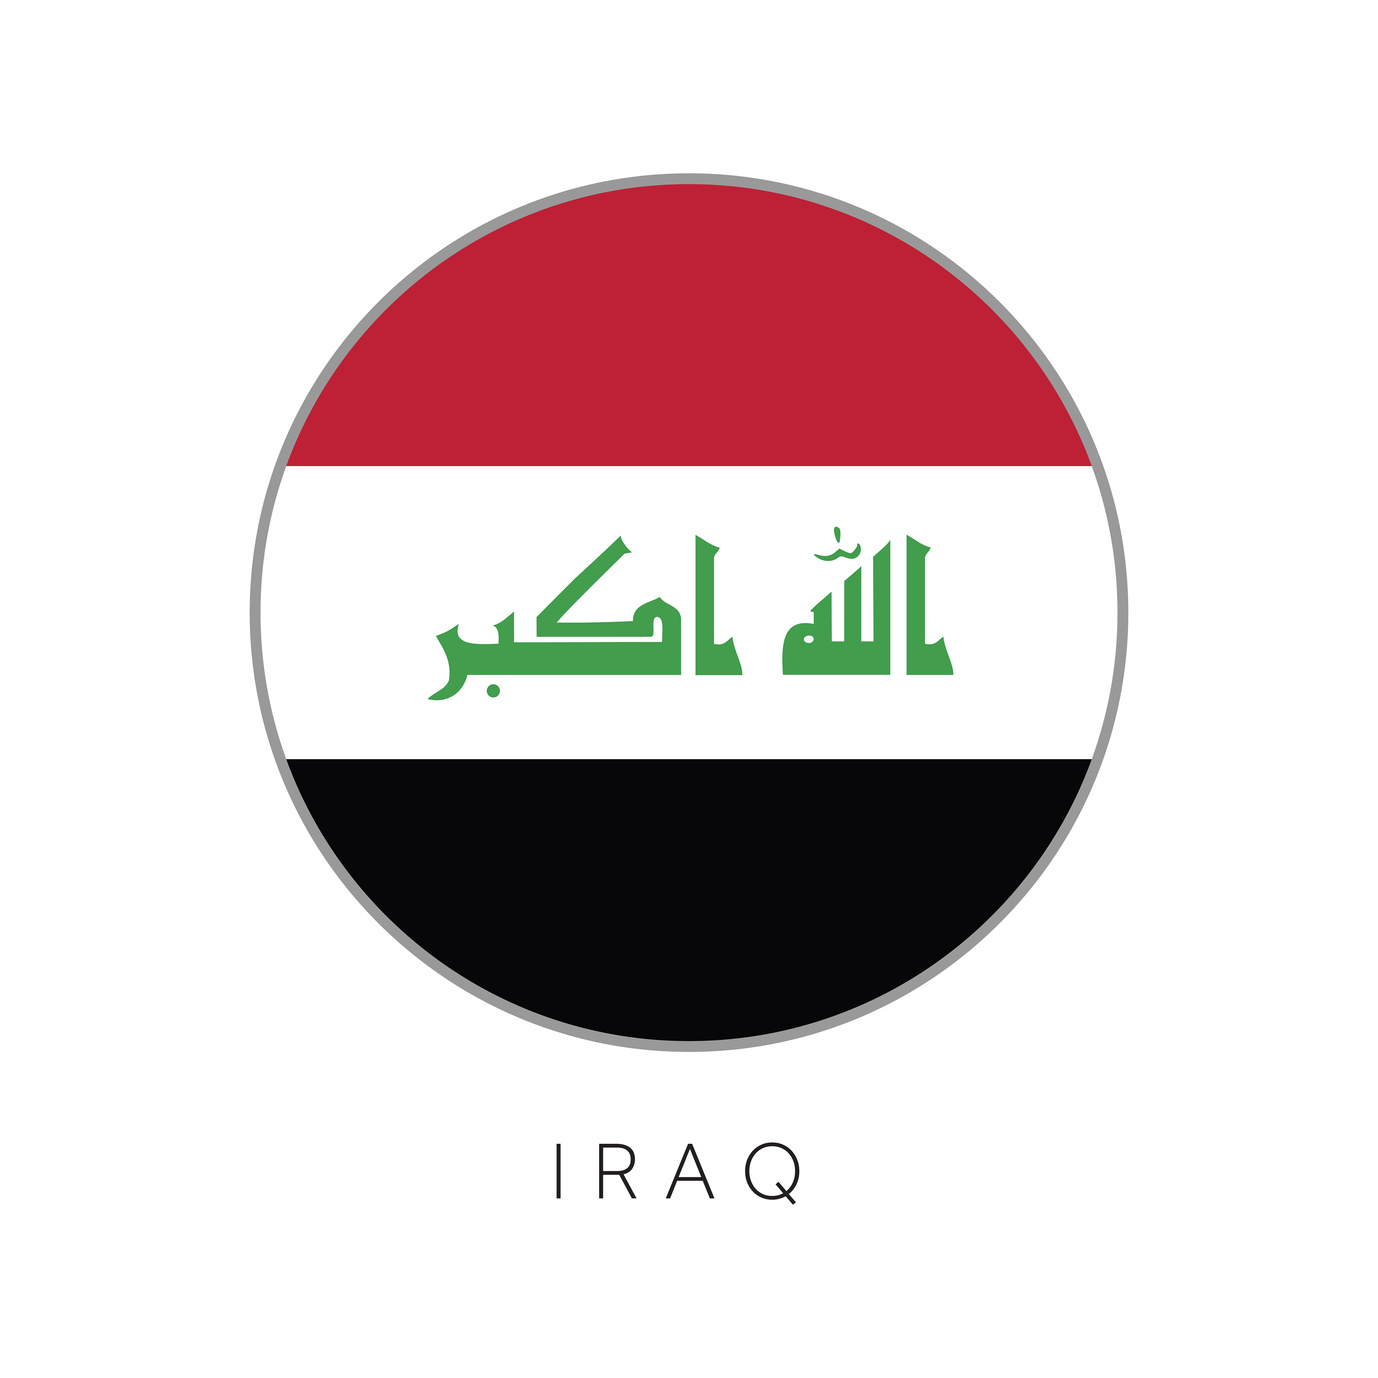 An exclusive in Iraq!